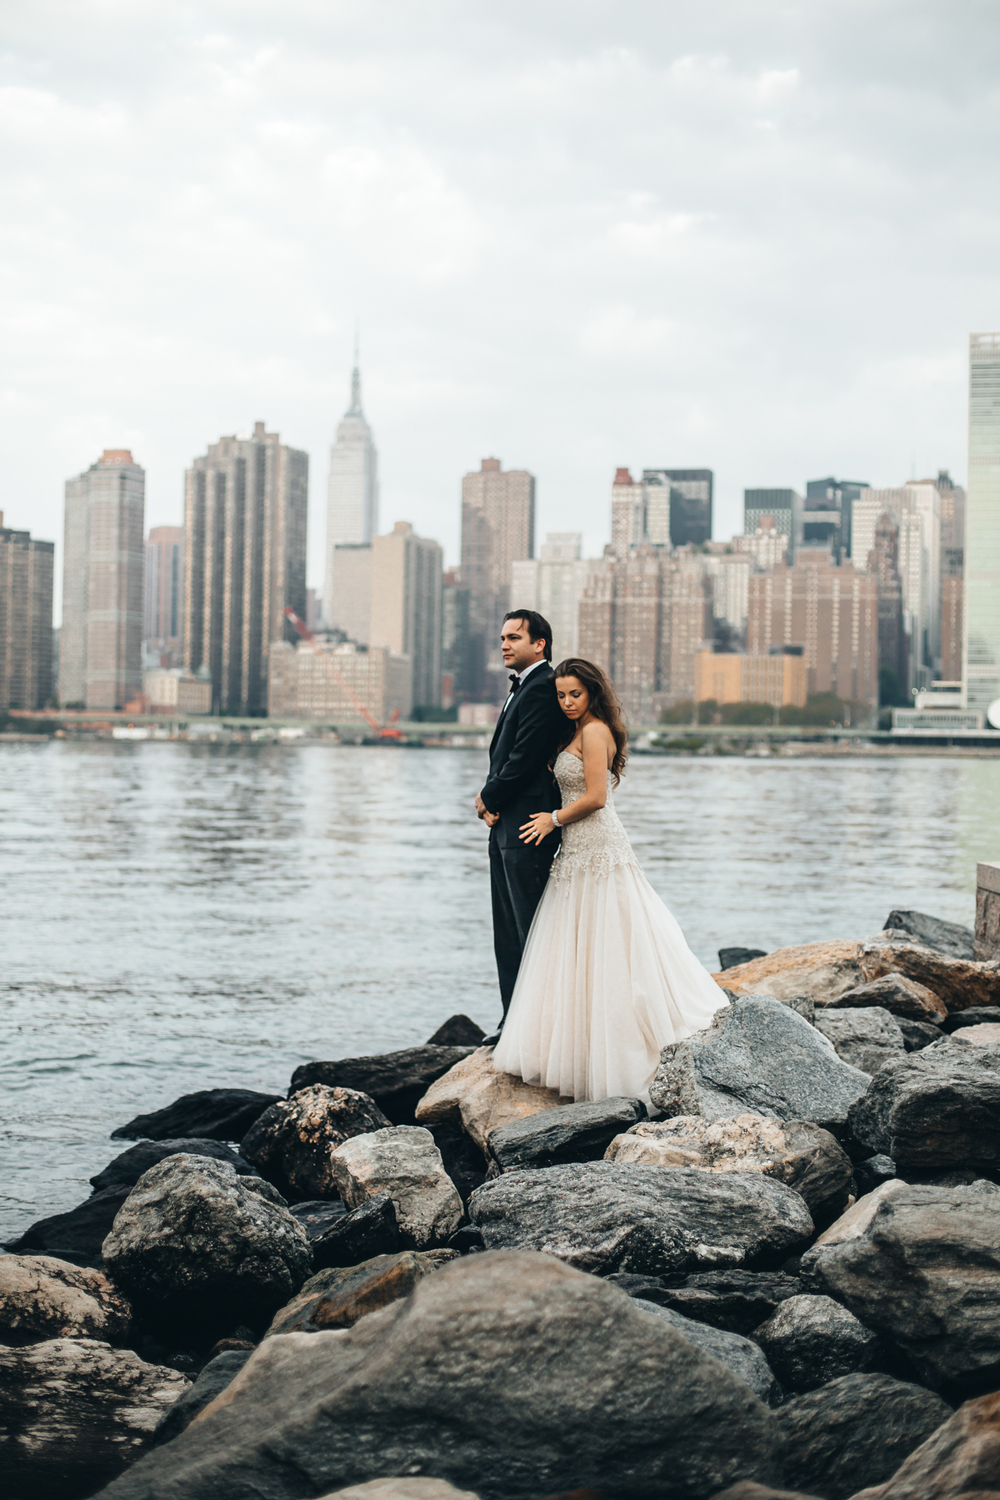 New York Wedding Photographer Boris Zaretsky Boris_Zaretsky_Photography__B2C6270-Edit-2 copy.jpg